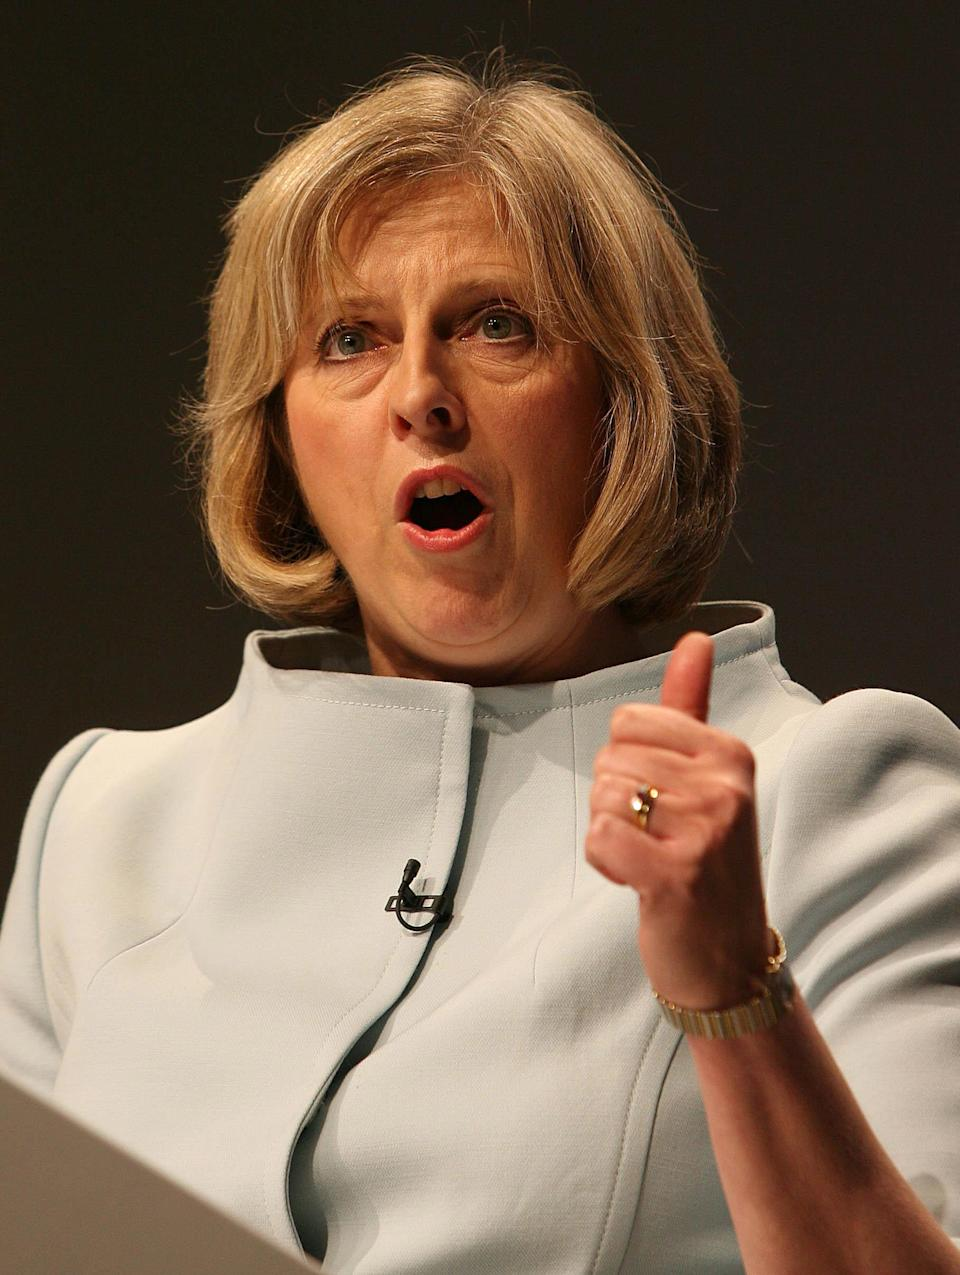 In 2009 she became the Shadow Secretary of State for Work and Pensions and Shadow Minister for Women. Photo dated 07/10/2009 (PA)